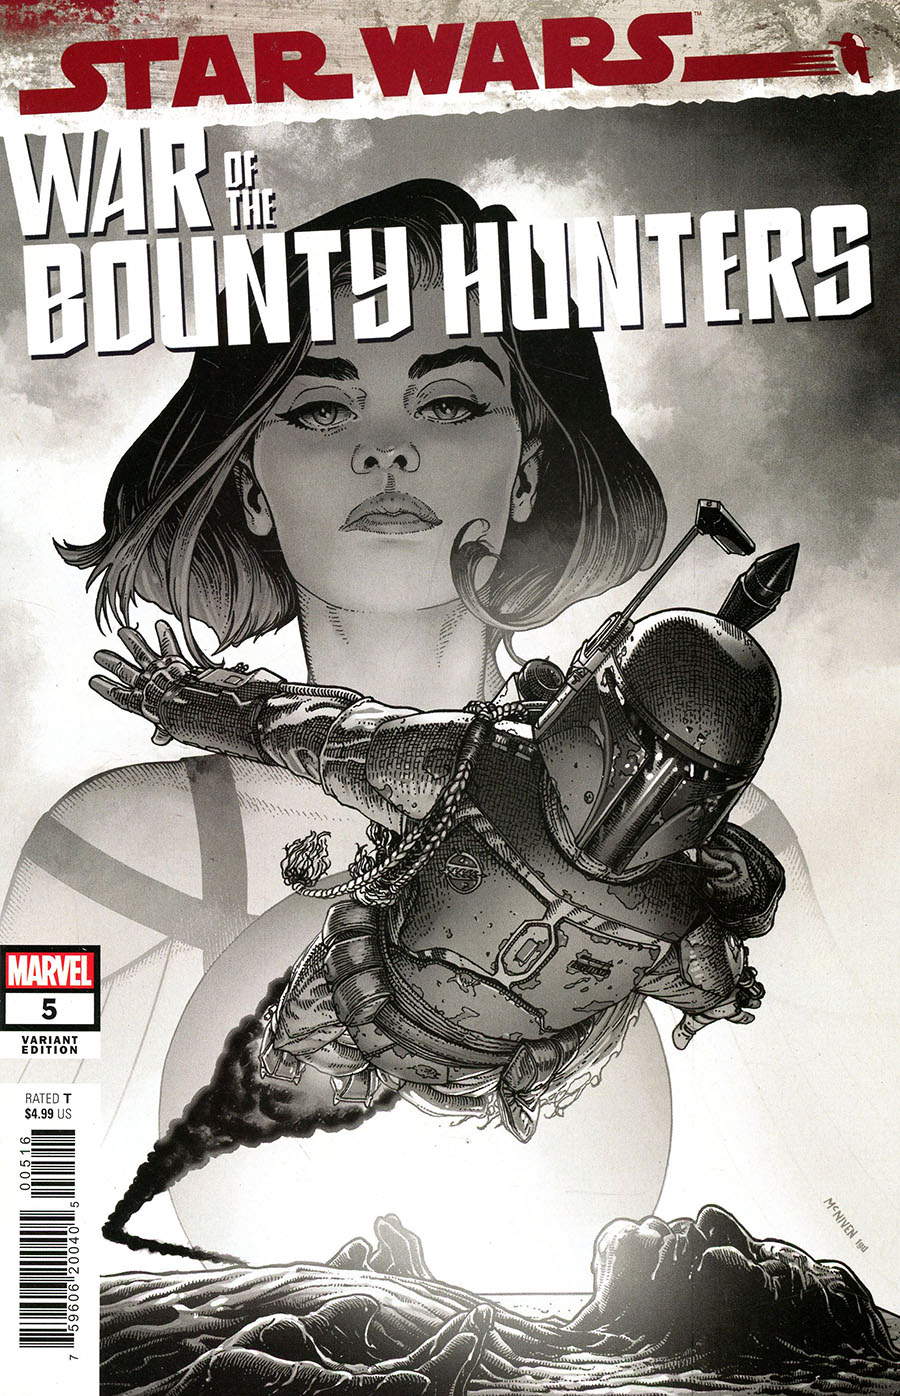 War of the Bounty Hunters #5 (Steve McNiven Carbonite Variant Cover) (06.10.2021)